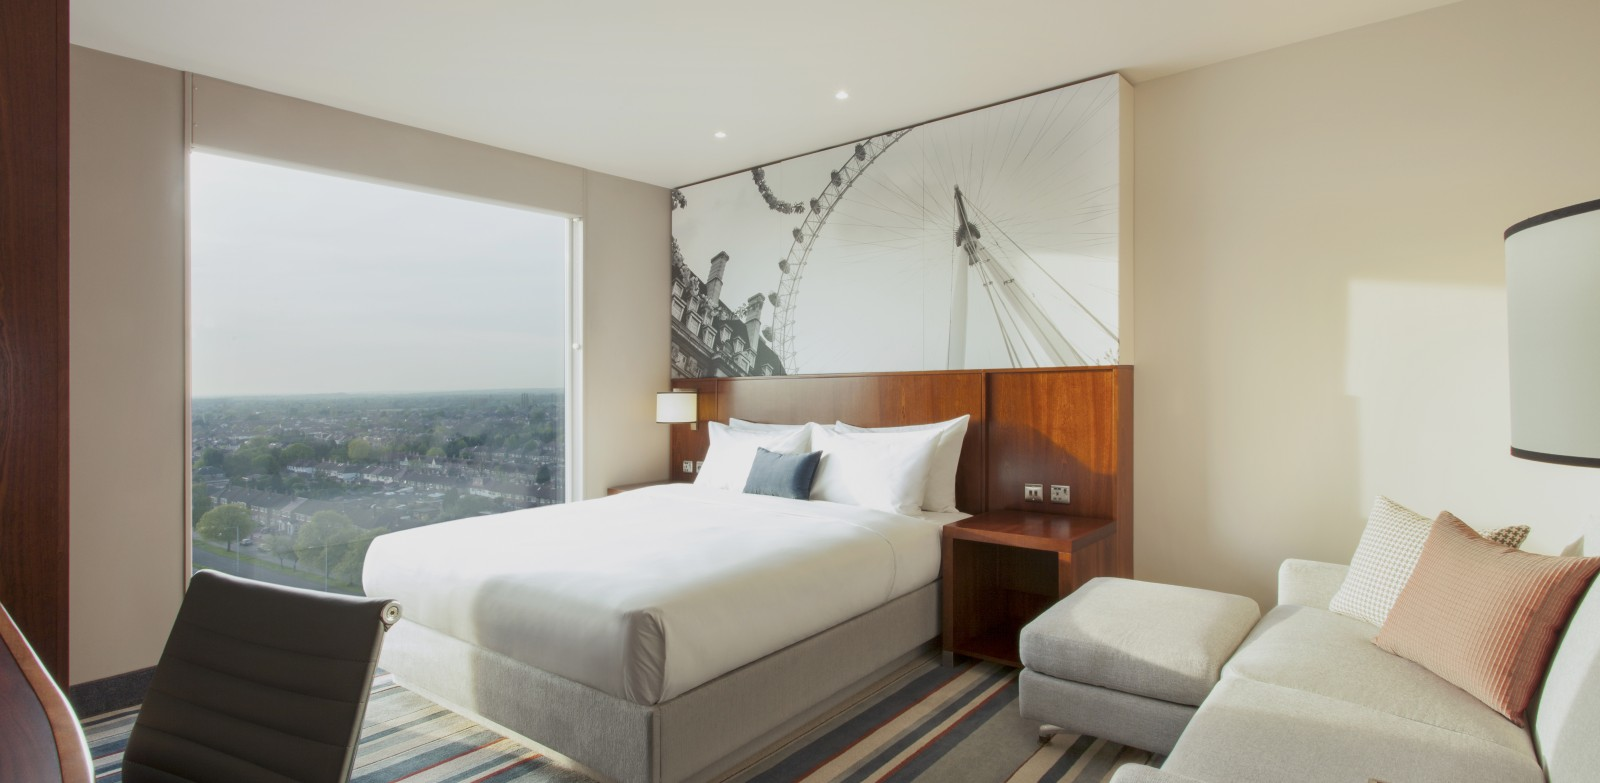 6-HyattPlace1004Bedroom_wih_pouff_Southall - Juttla Architects